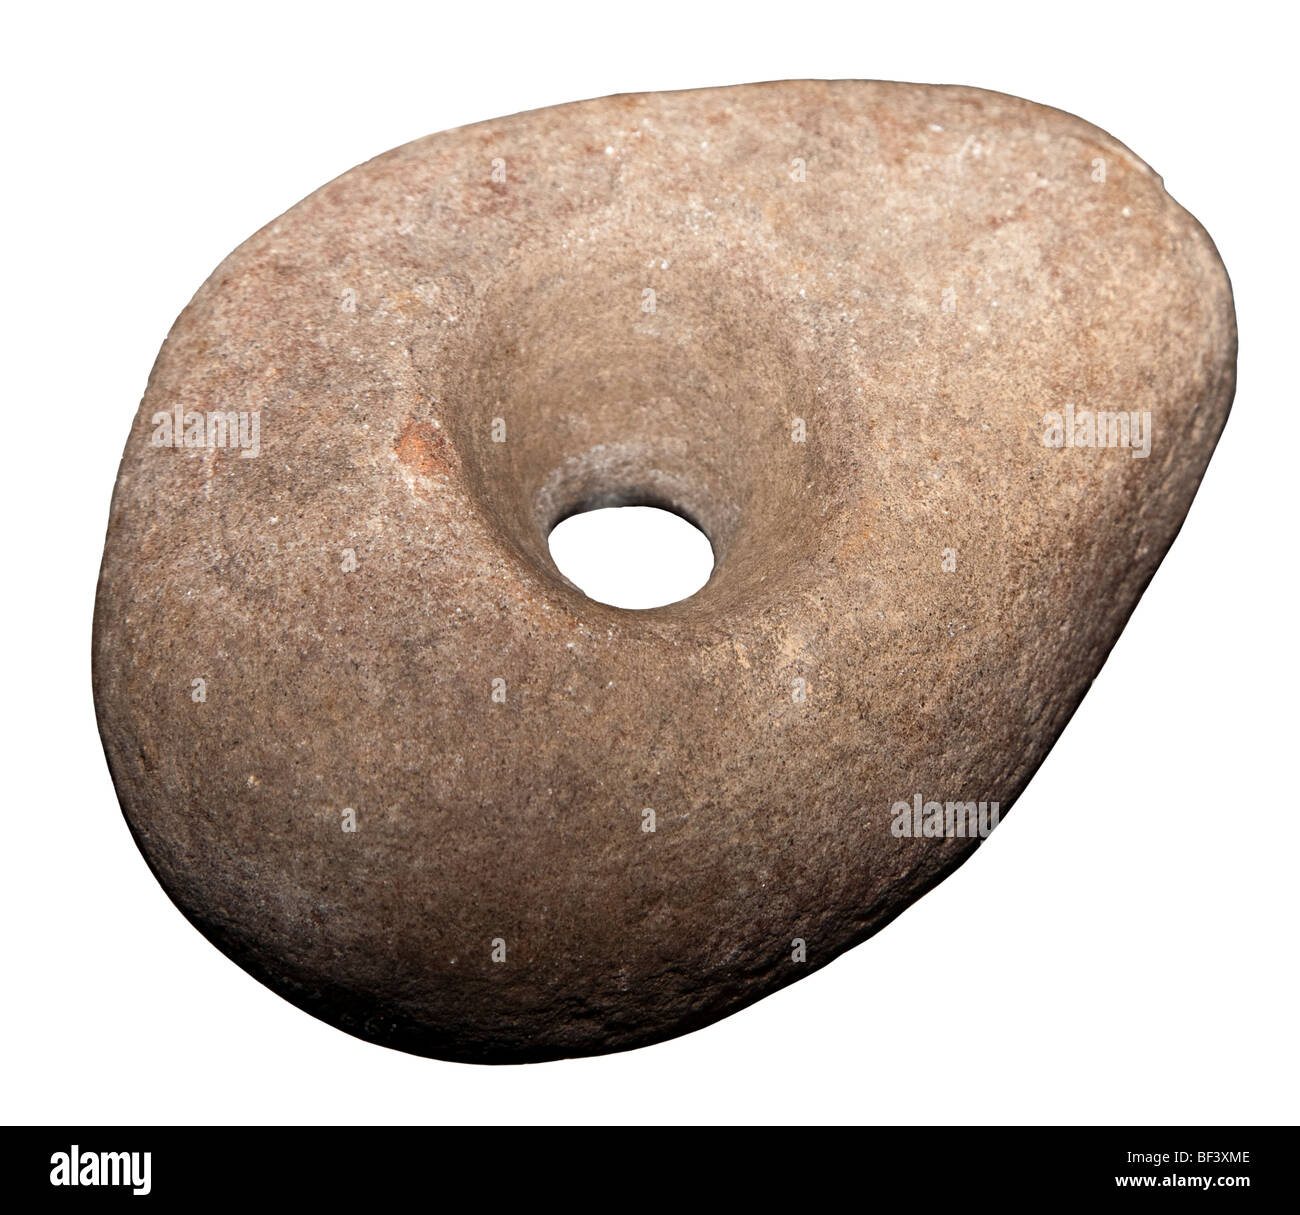 Stone tool associated with the Funnel Beaker culture Hunebedcentrum visitor centre for dolmens Borger Drenthe Netherlands - Stock Image